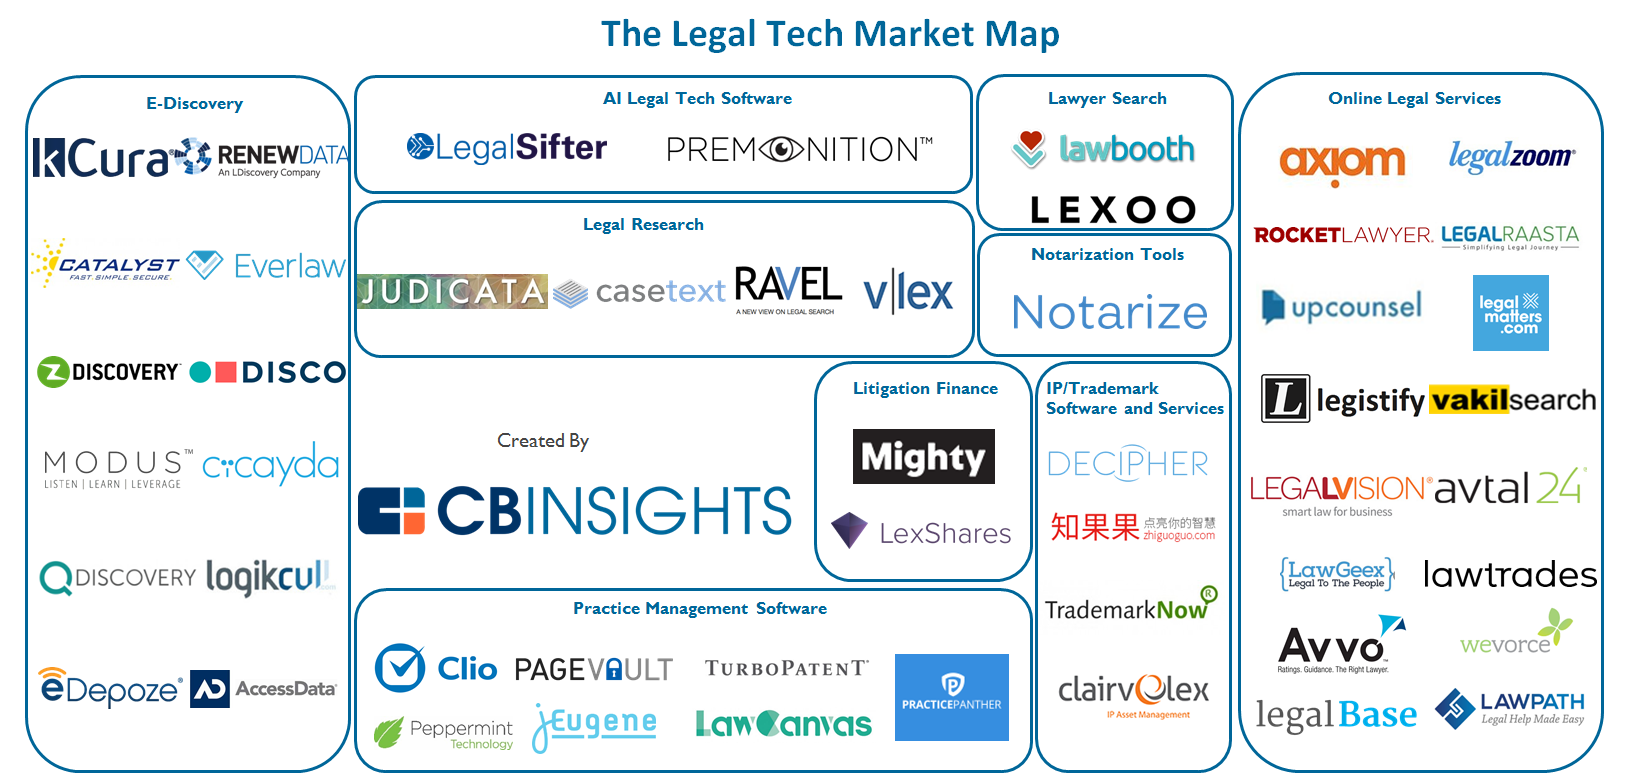 Legal.tech.market.map_2016_v9